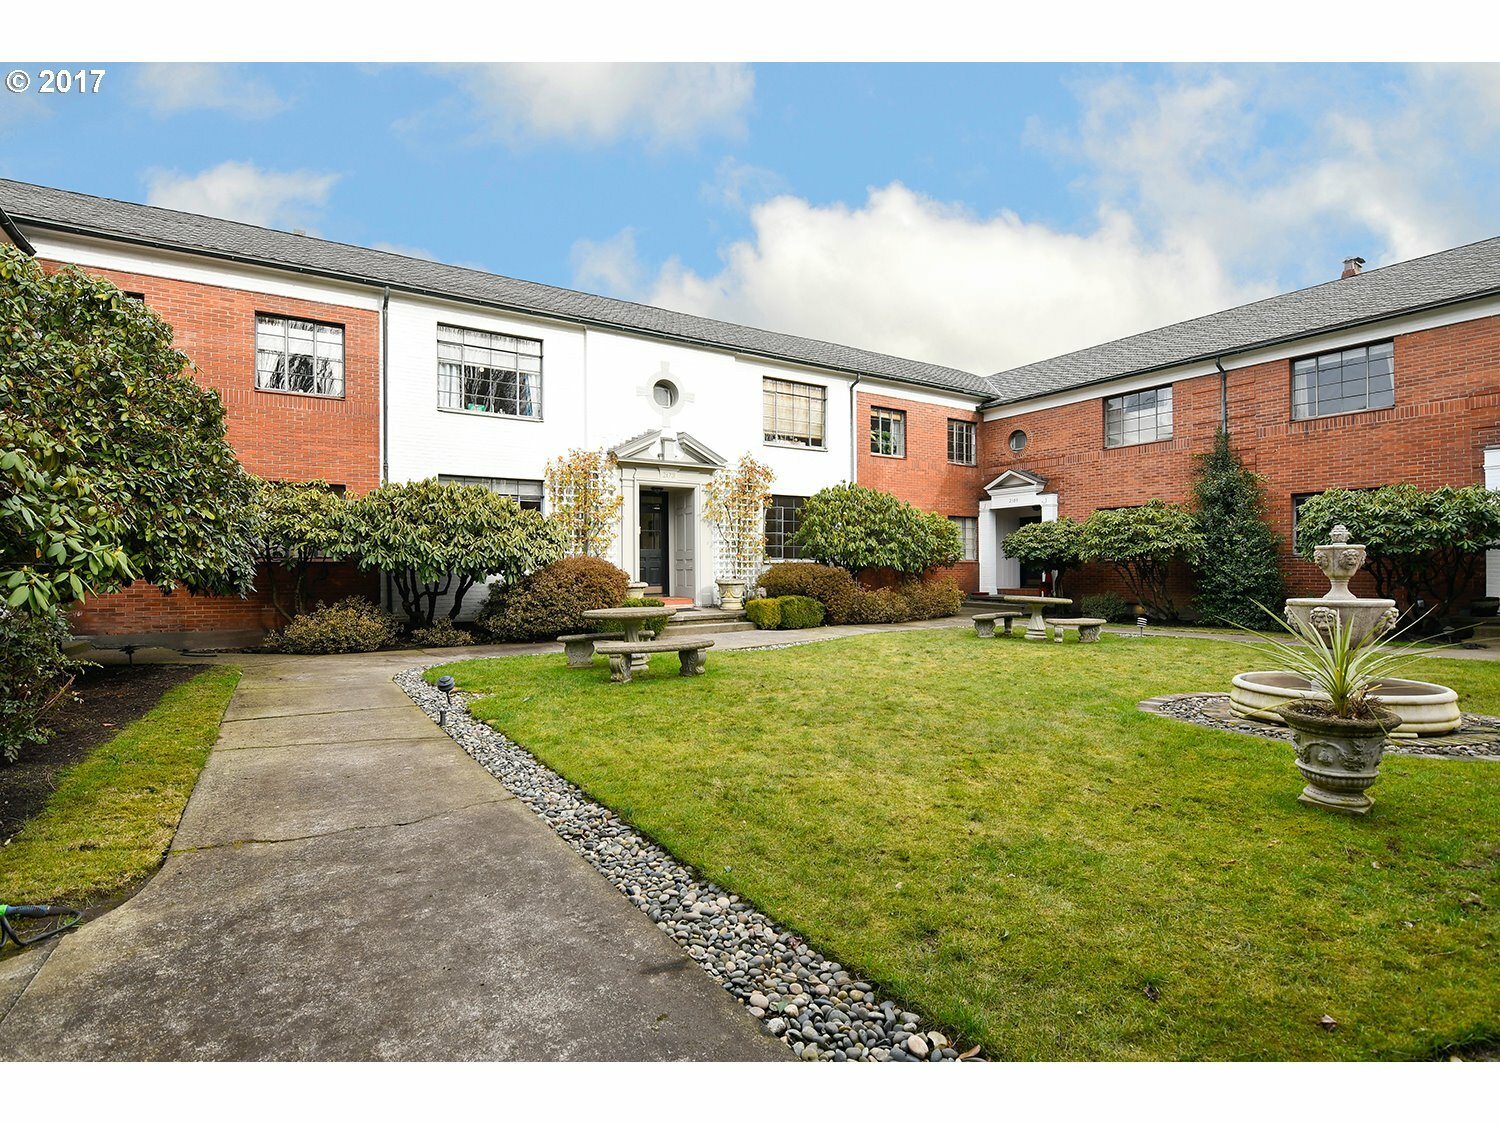 2173 Nw Irving St 8, Portland, OR - USA (photo 1)